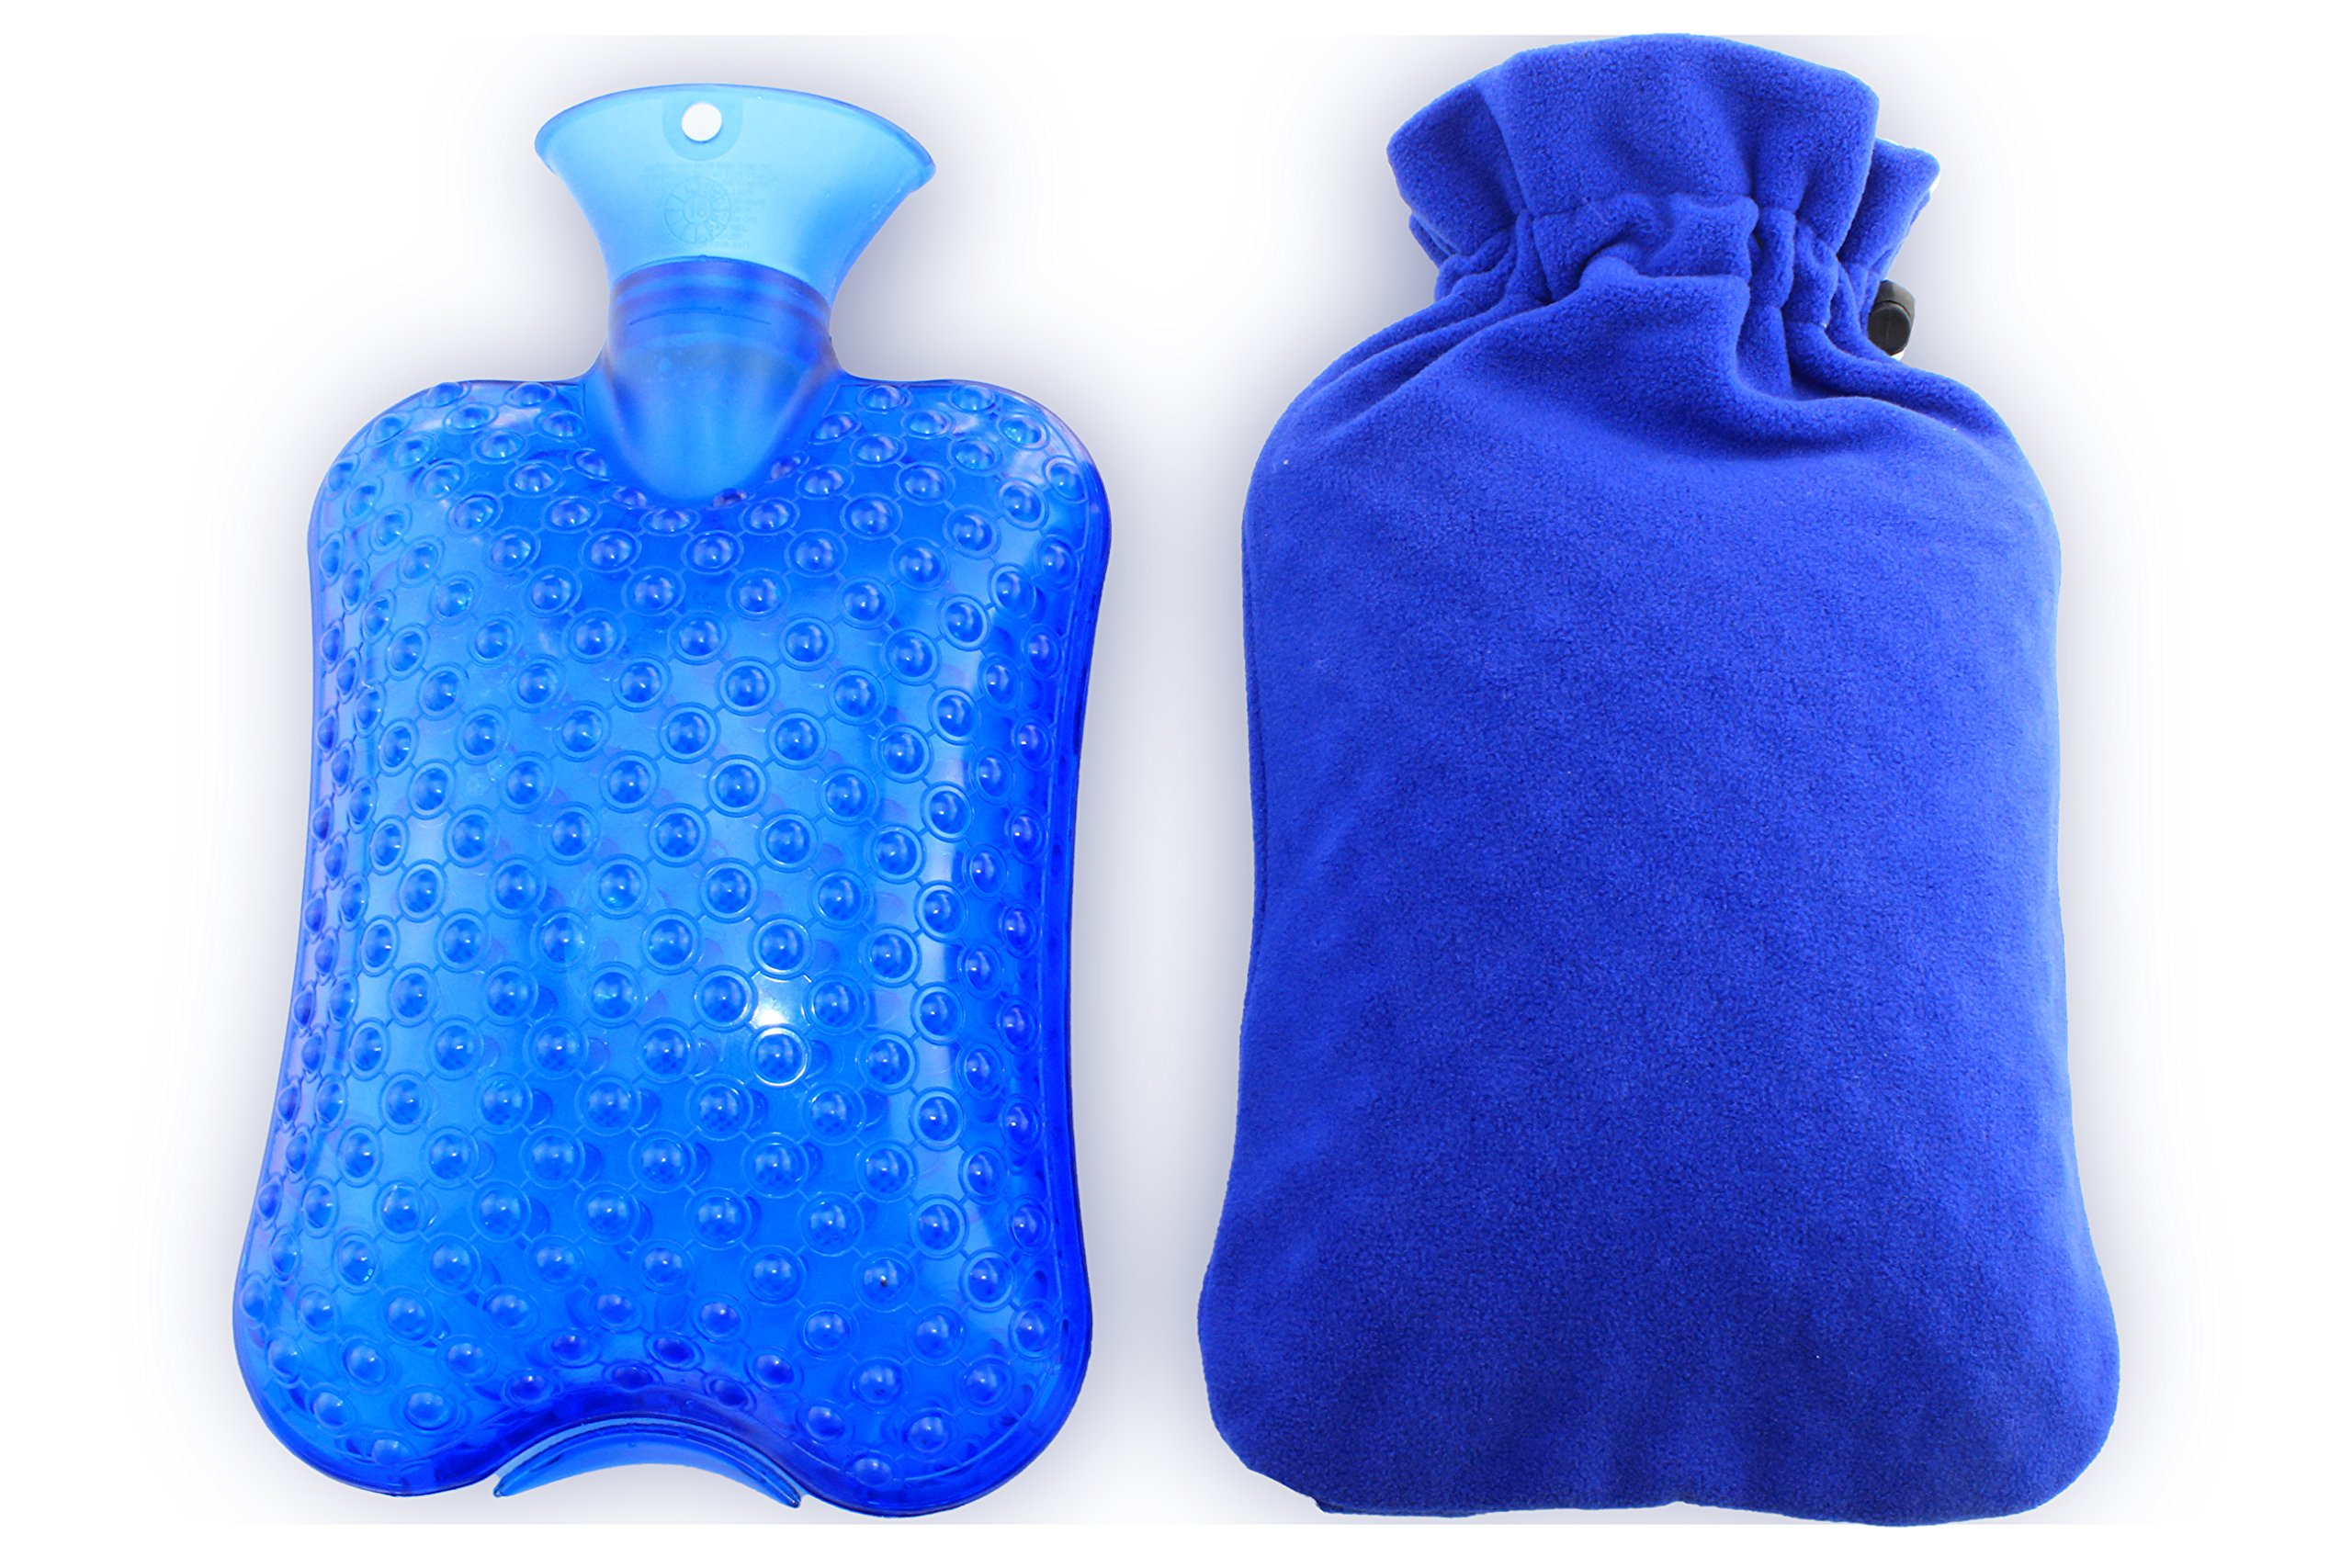 KOODER Hot Water bottle,Slow down the symptom of dysmenorrhea,warm your stomach,Winter heating products! 2L(Blue)